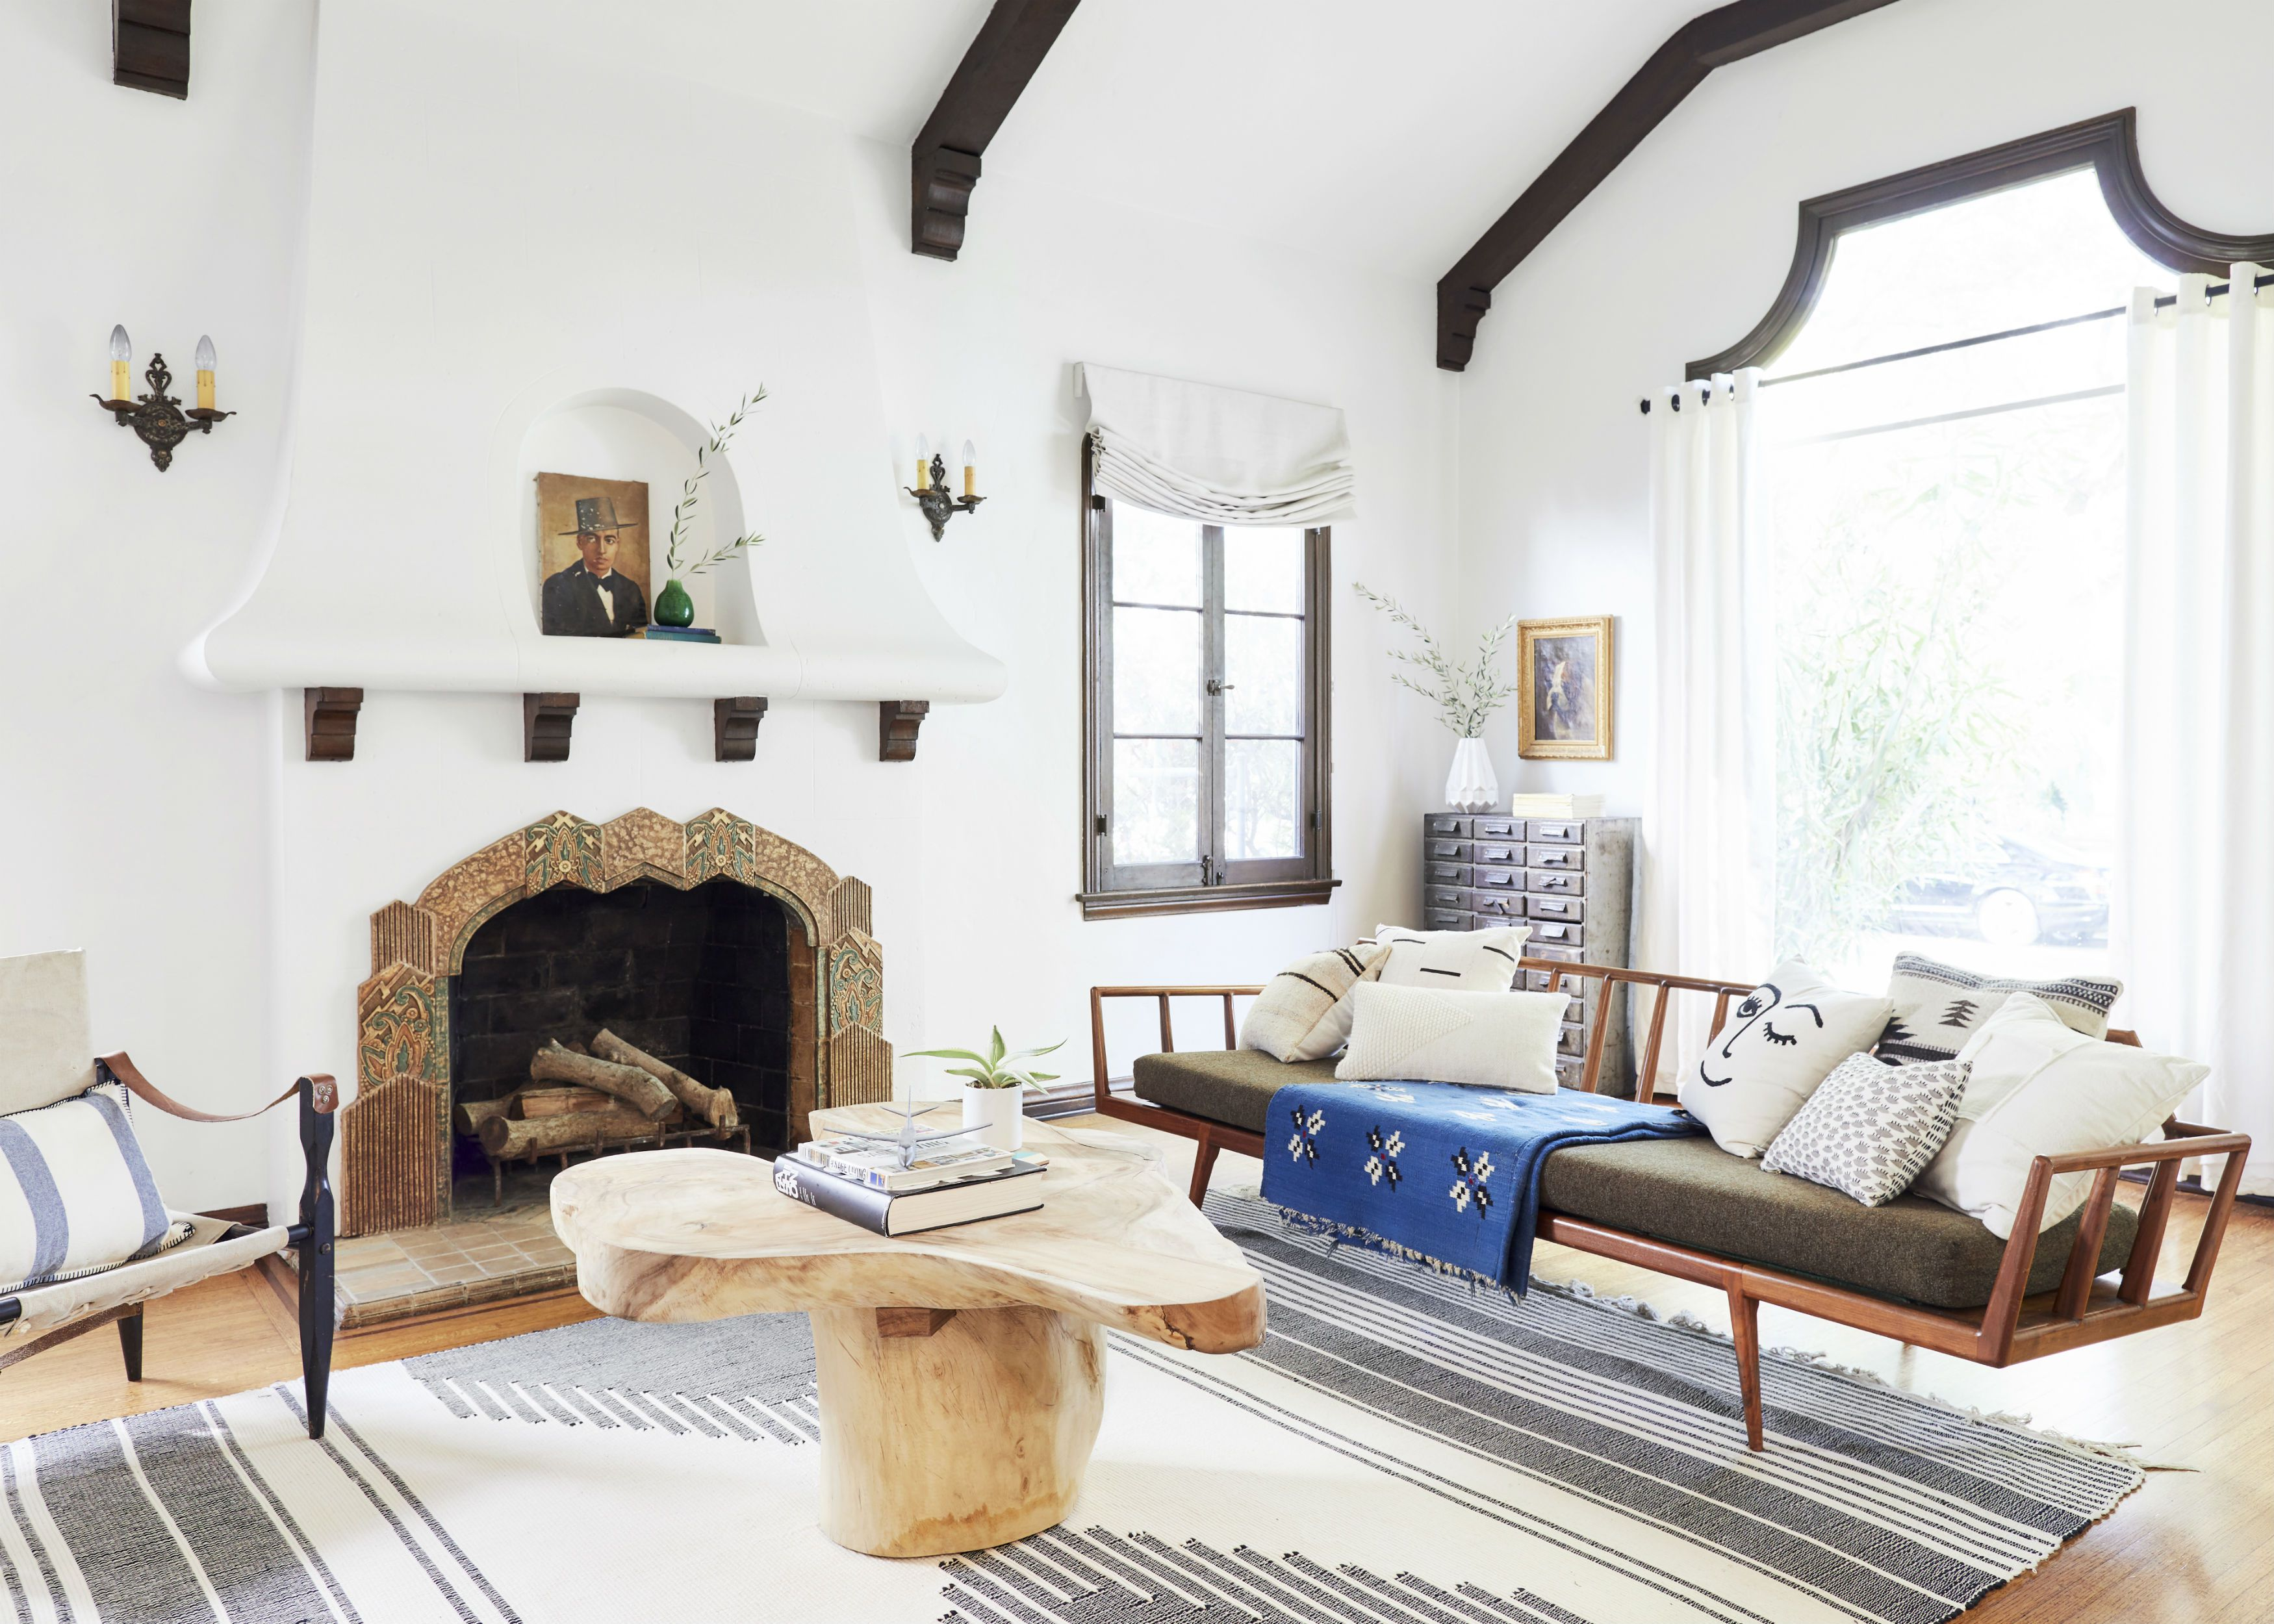 Southwestern style living room with rustic fireplace